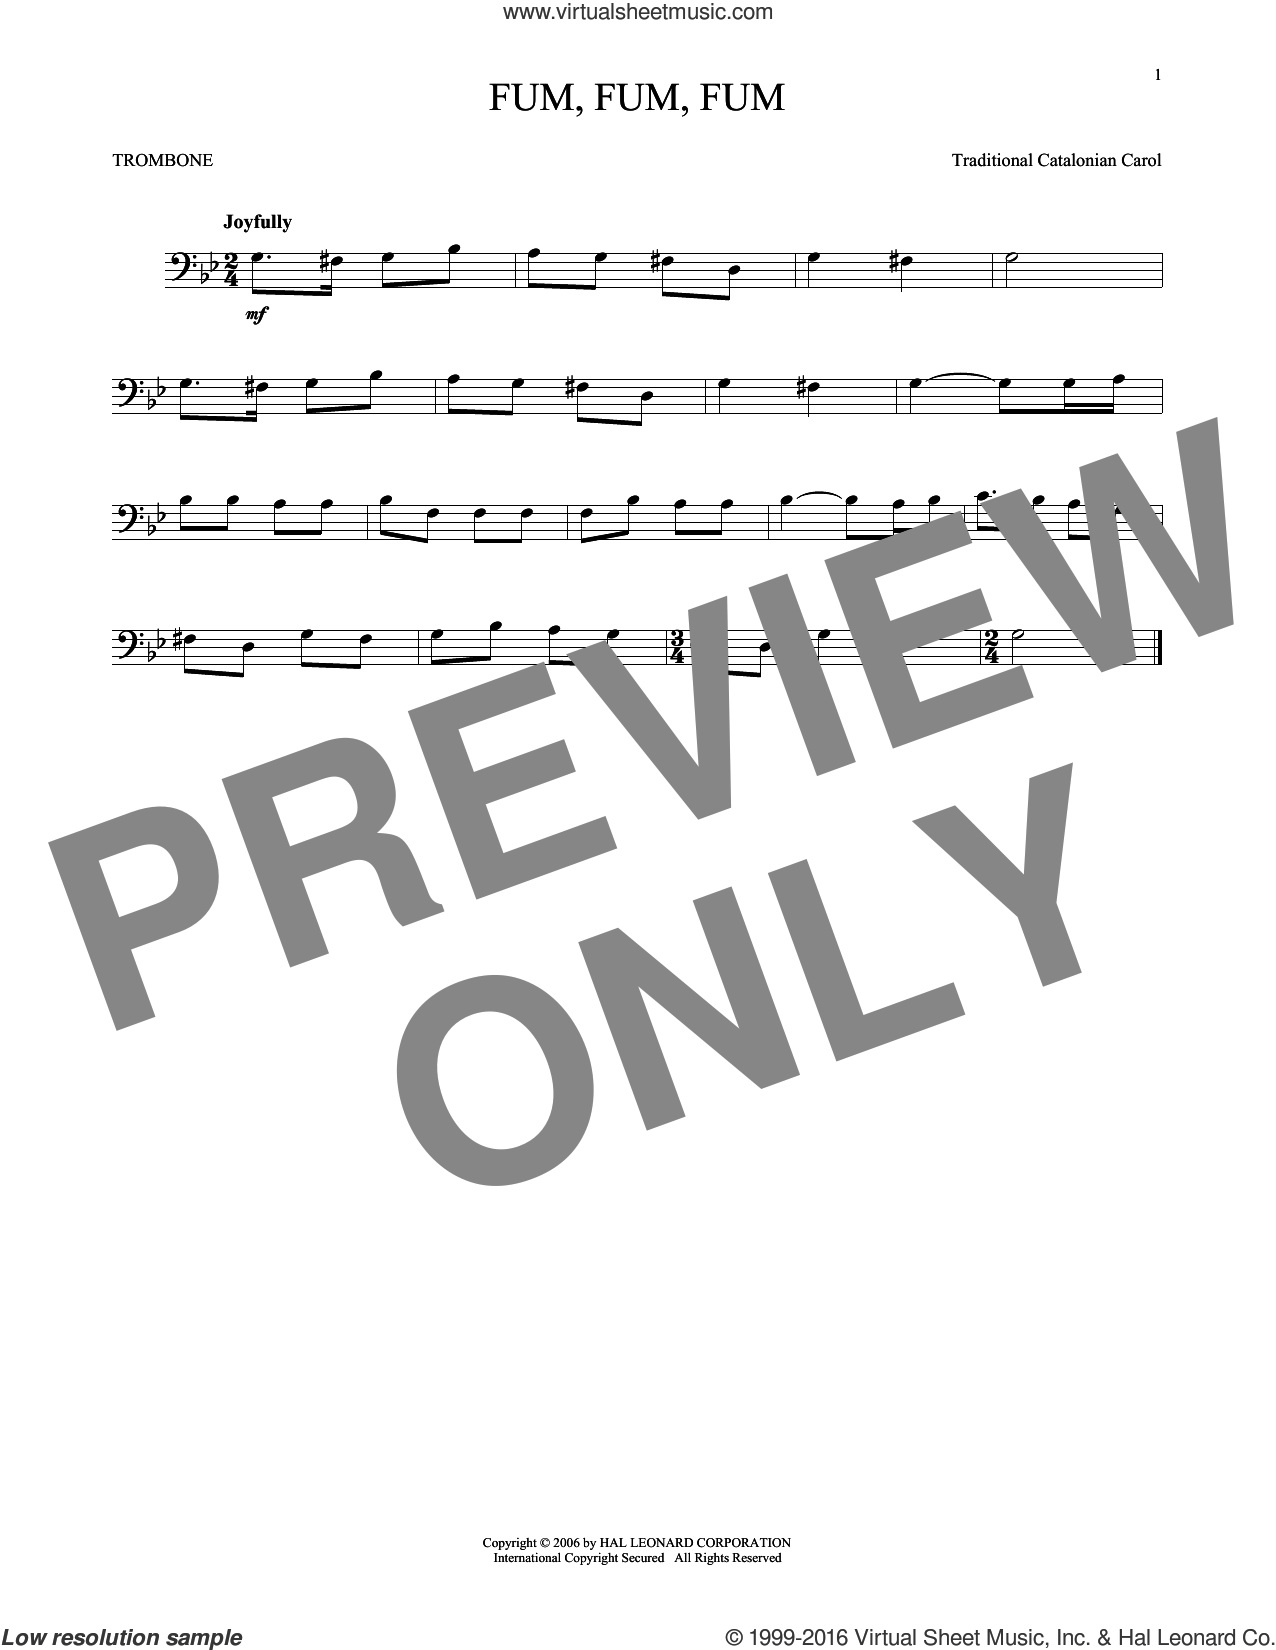 Fum, Fum, Fum sheet music for trombone solo, intermediate skill level